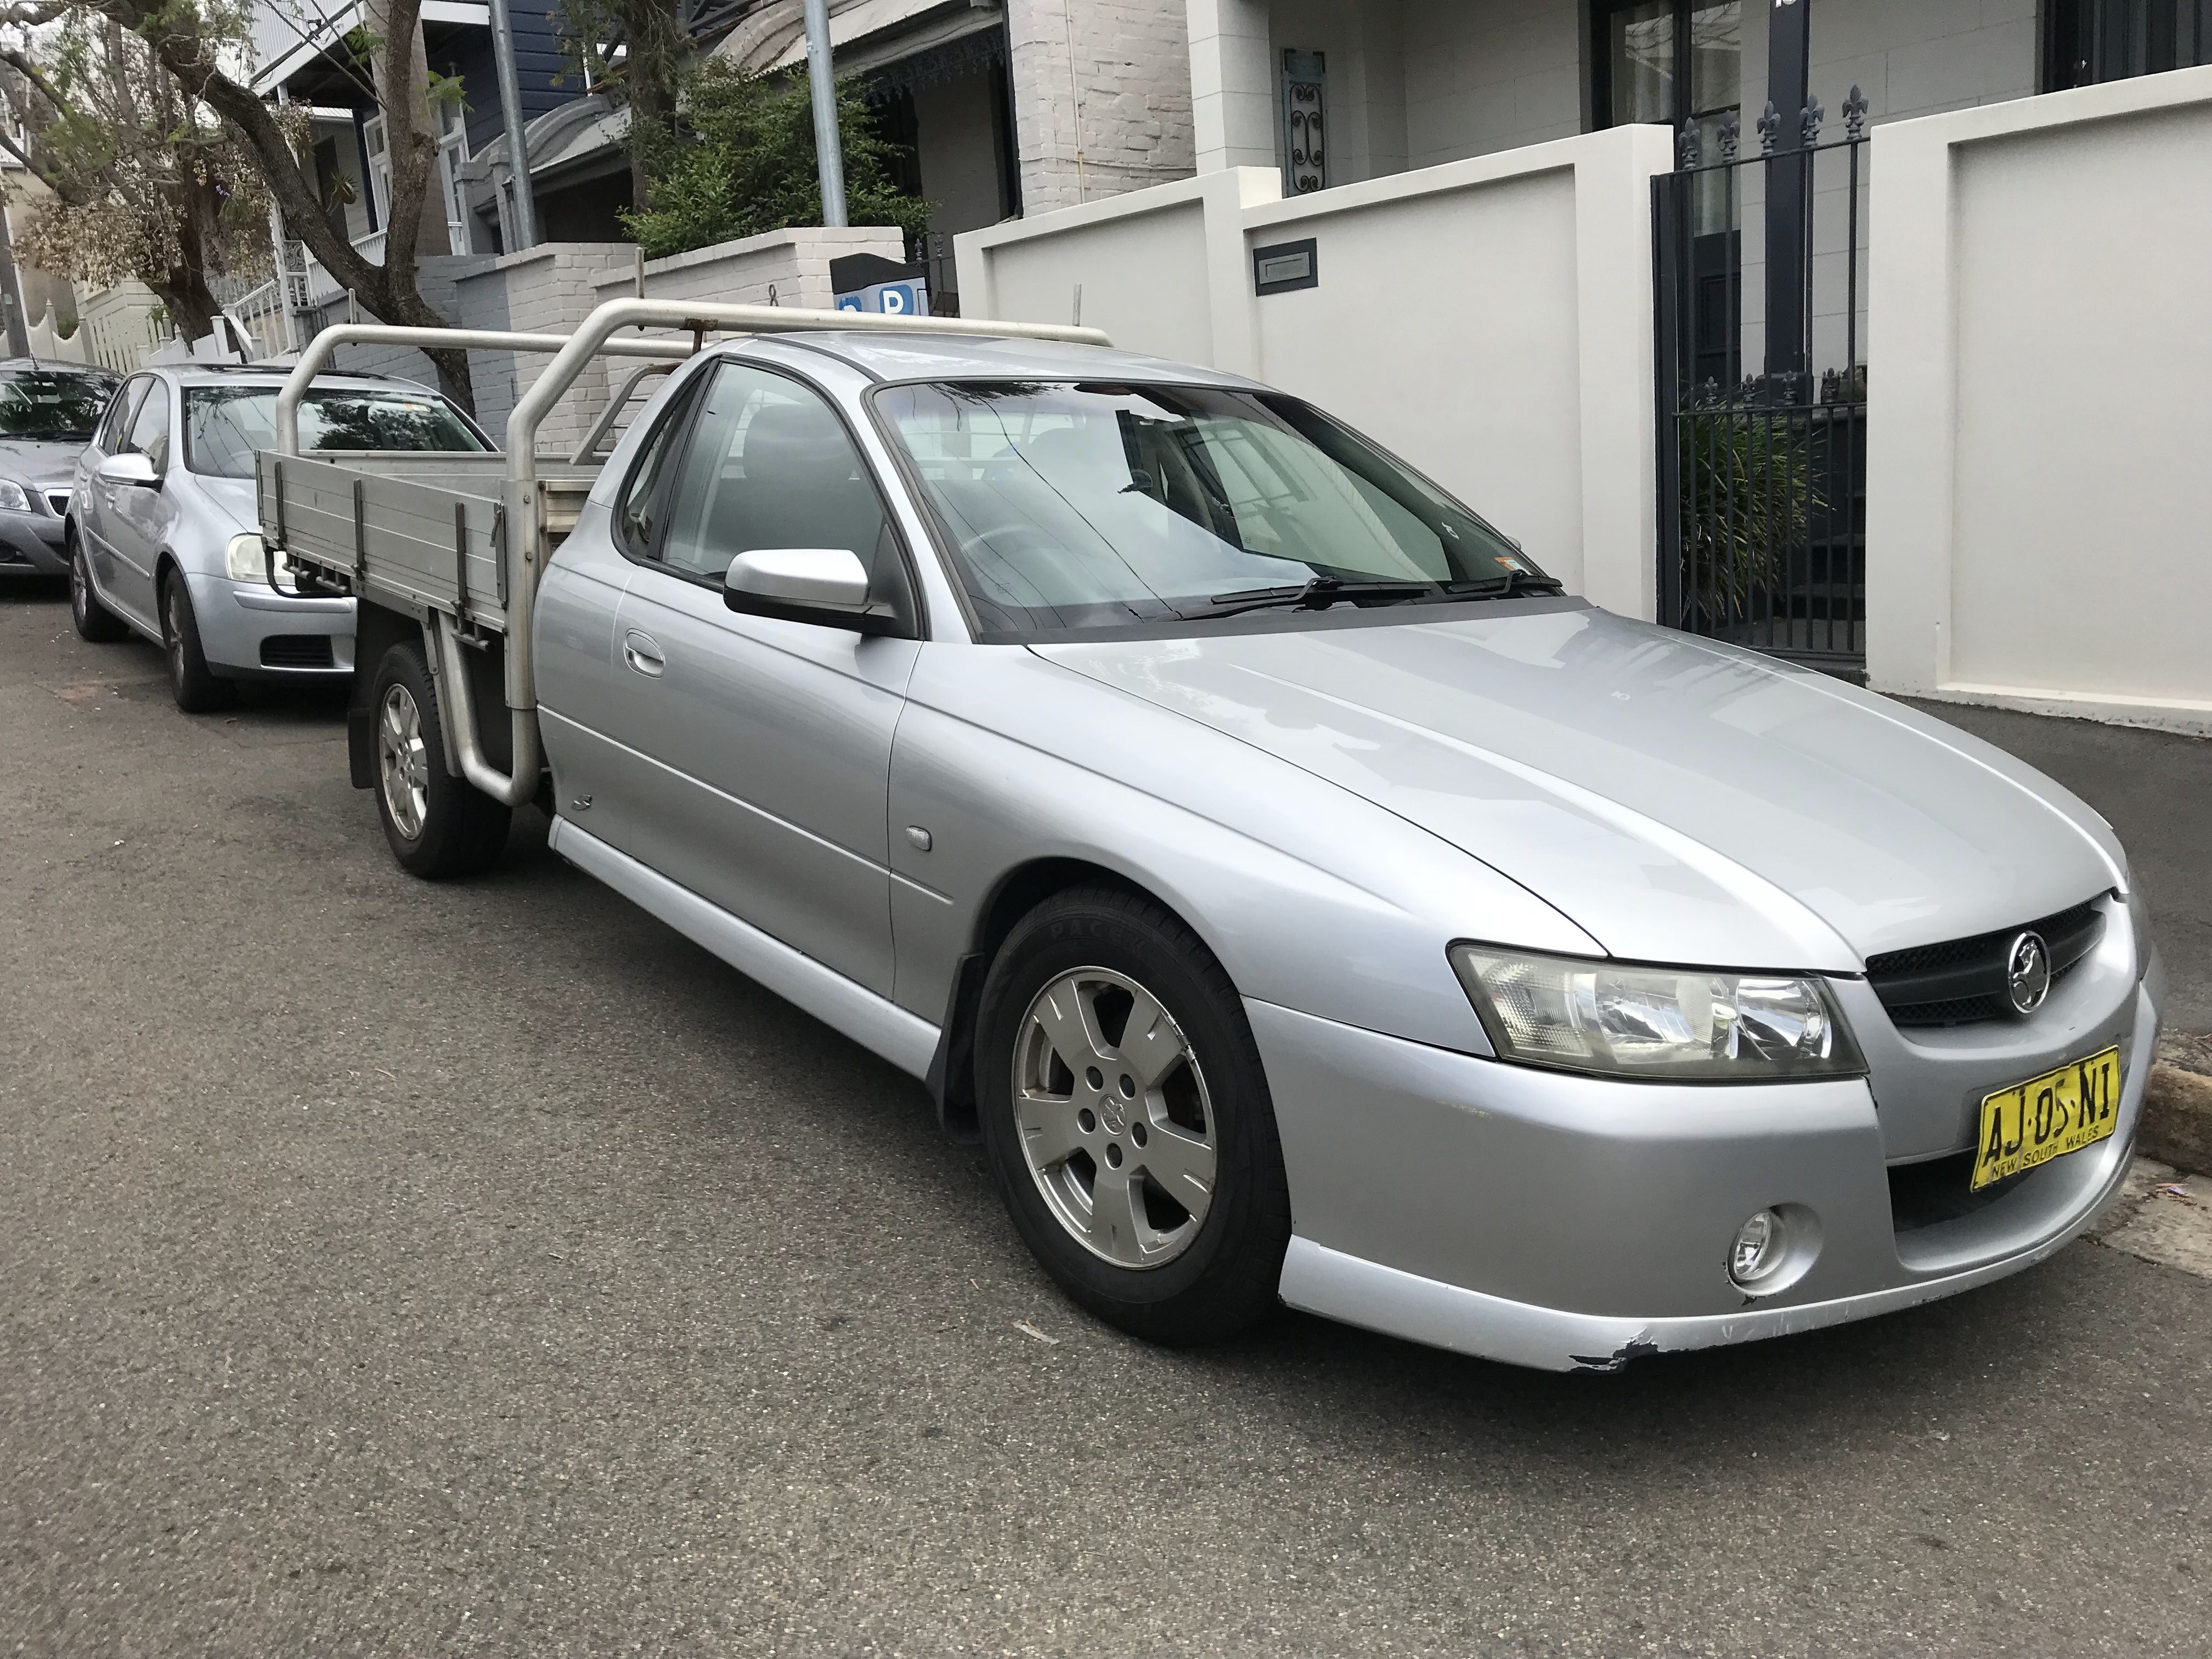 Picture of Emilien's 2005 Holden VZ S UTE One tonner with tray